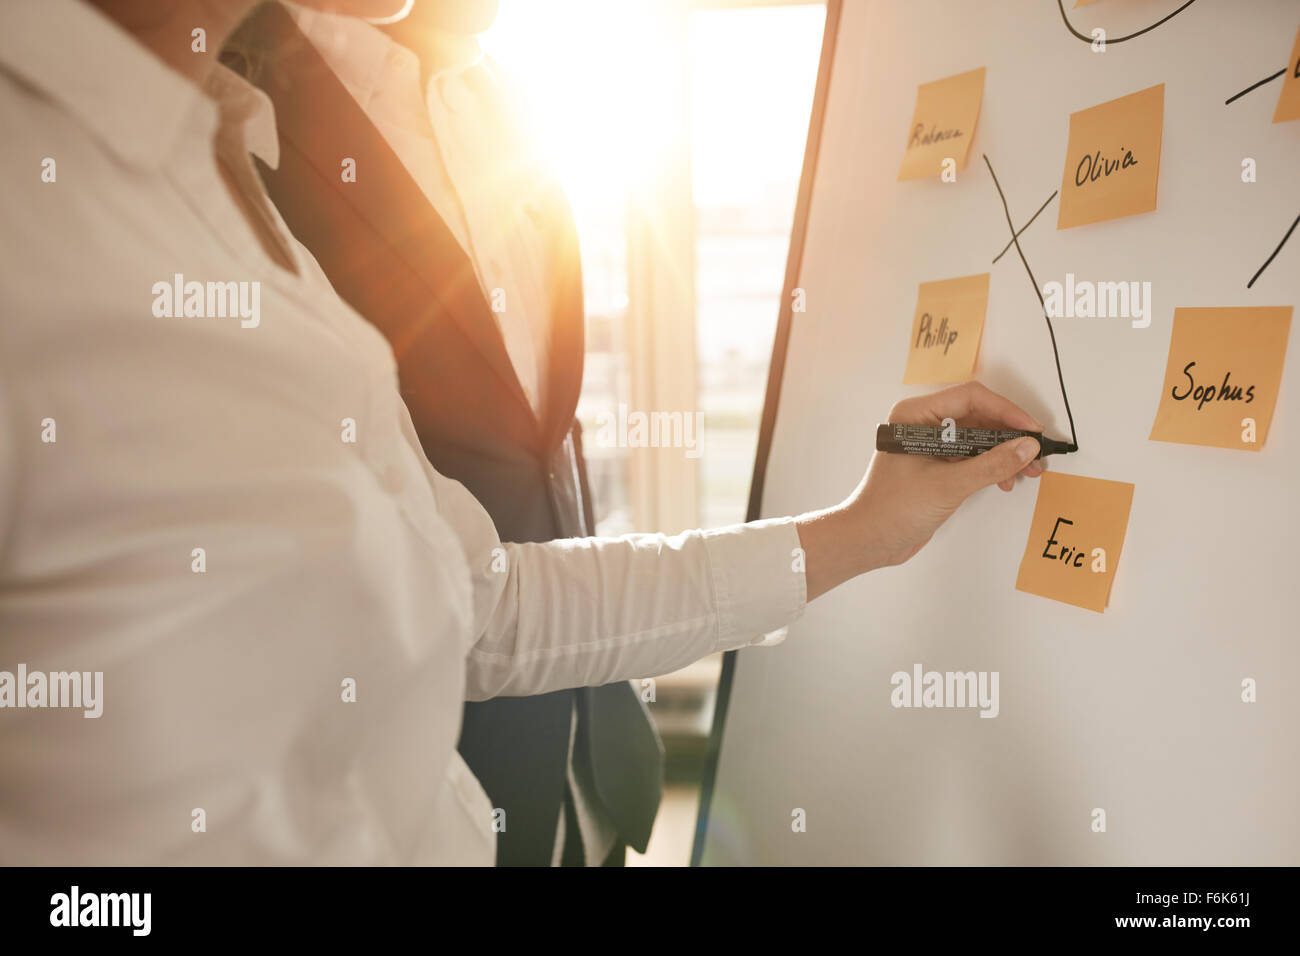 Cropped shot of business people making pairs of employees for making efficient sales team. Woman pairing sticky - Stock Image